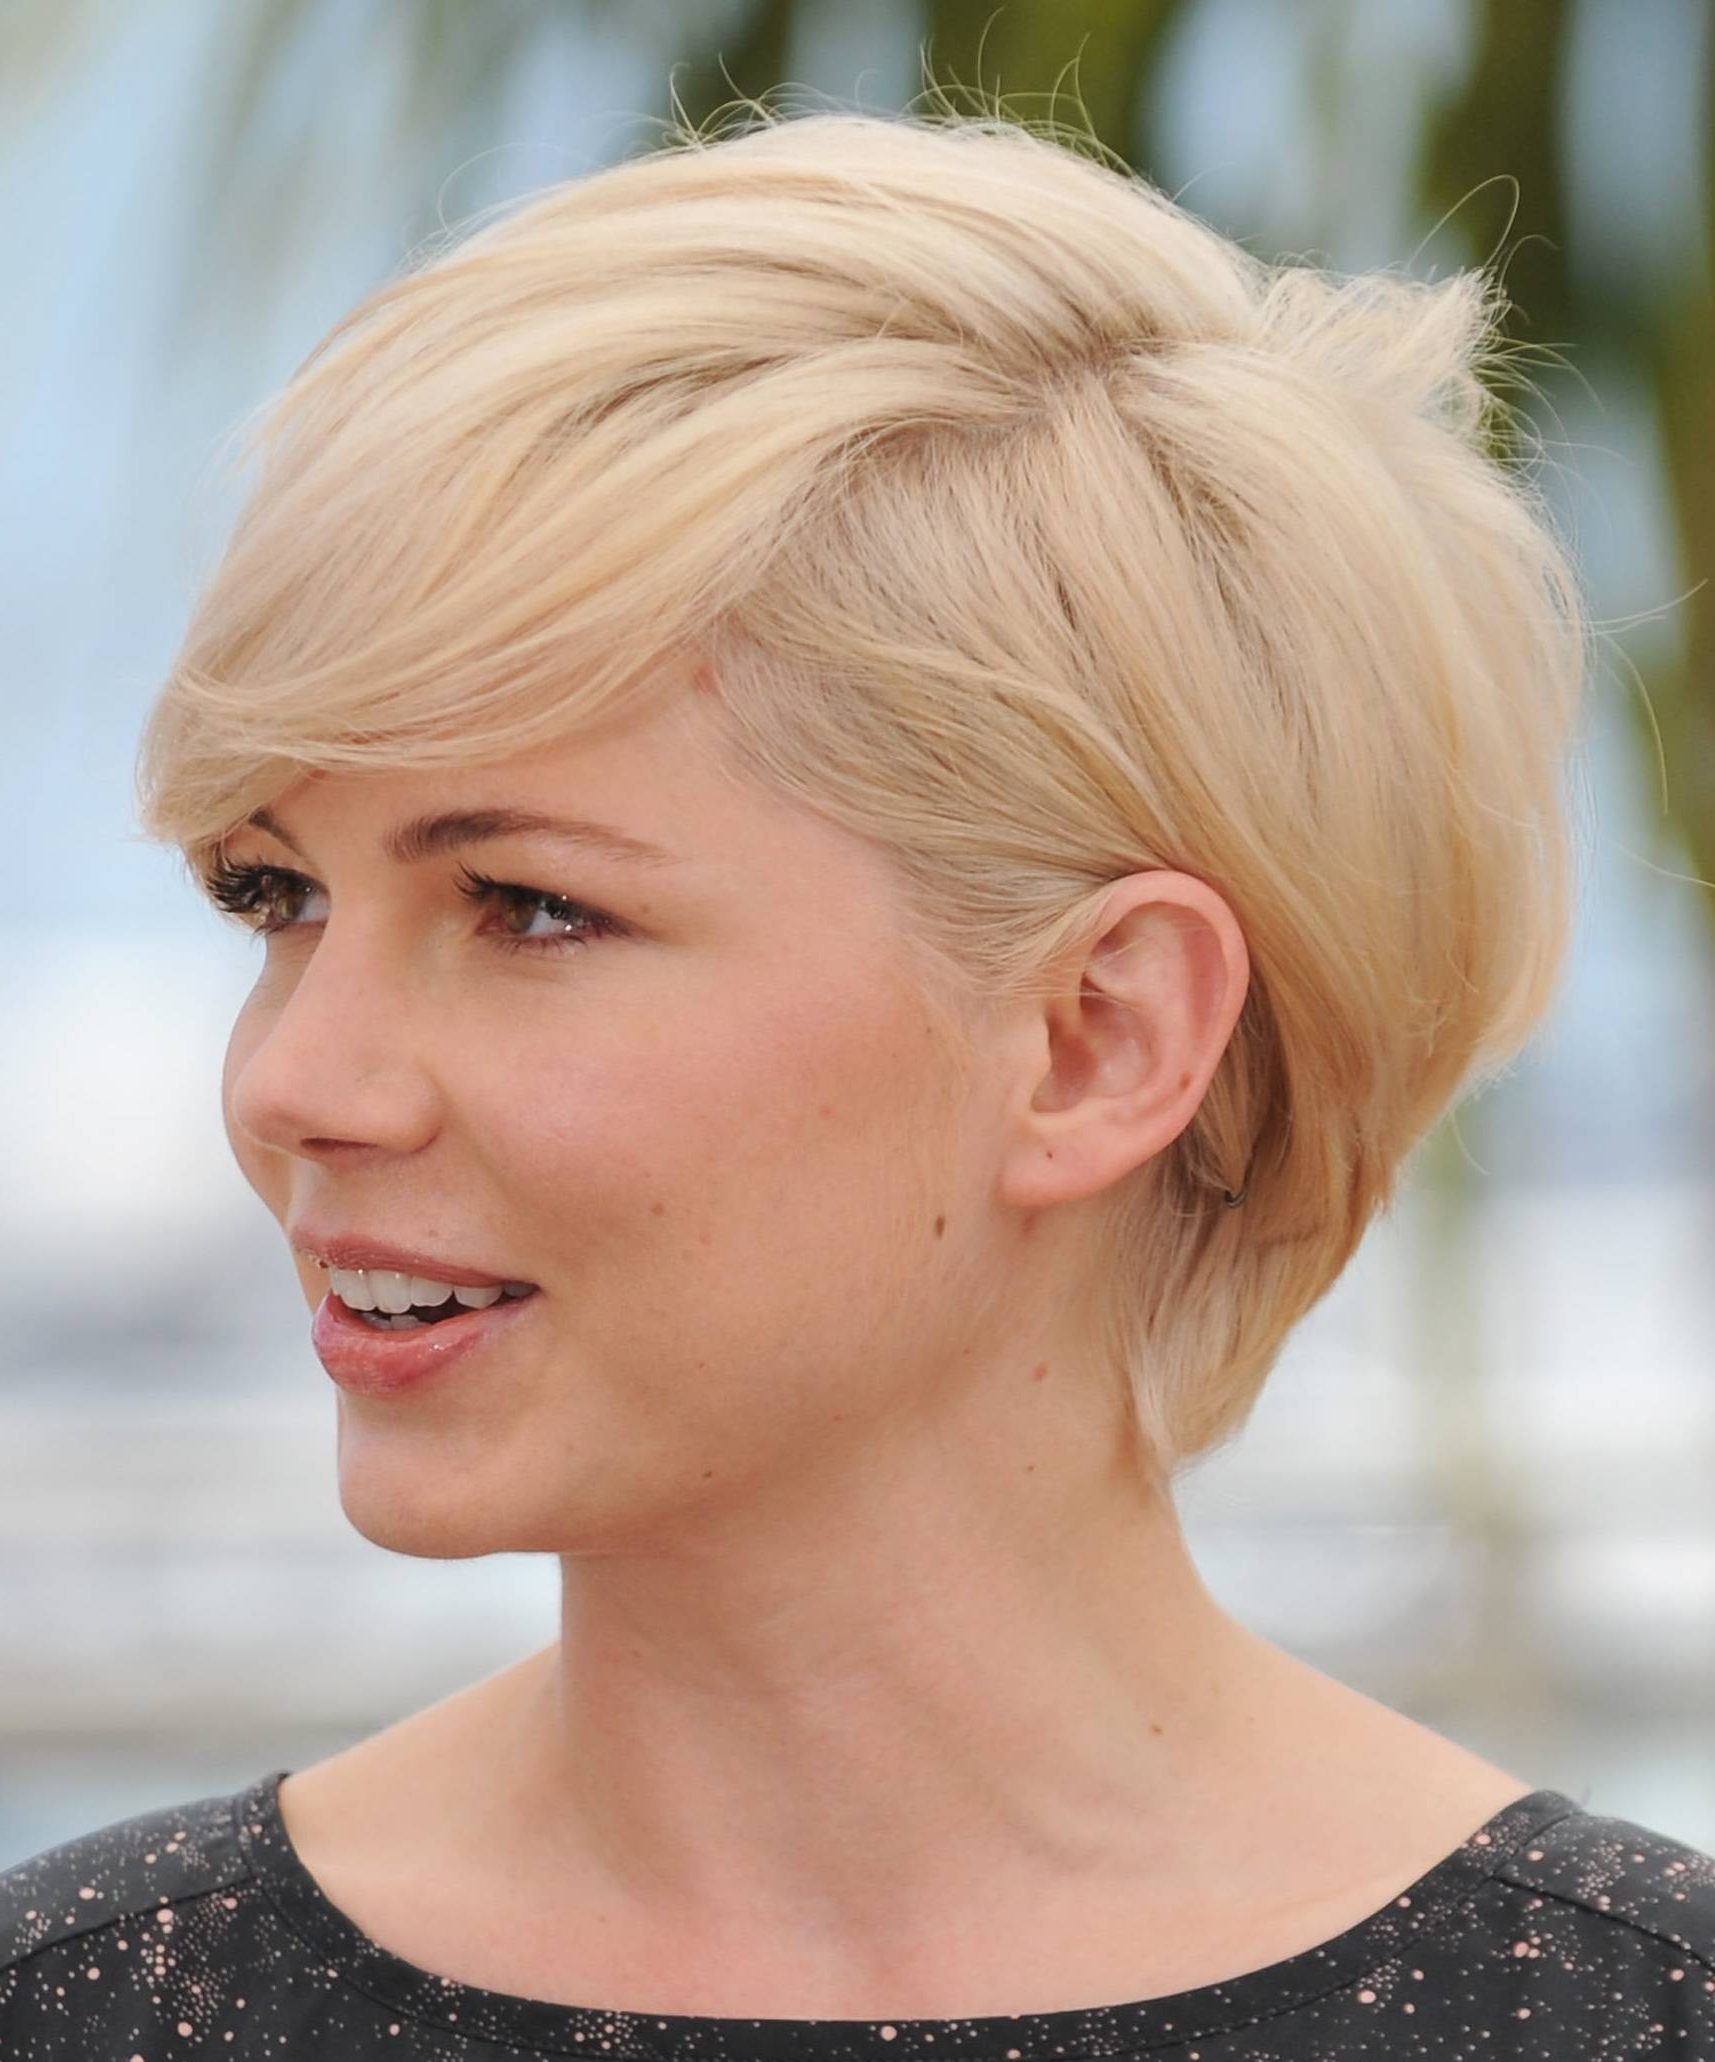 The Blonde Short Hairstyles Are Mostly Wornprettiest Celebrities With Regard To Short Hairstyles For Summer (View 18 of 25)